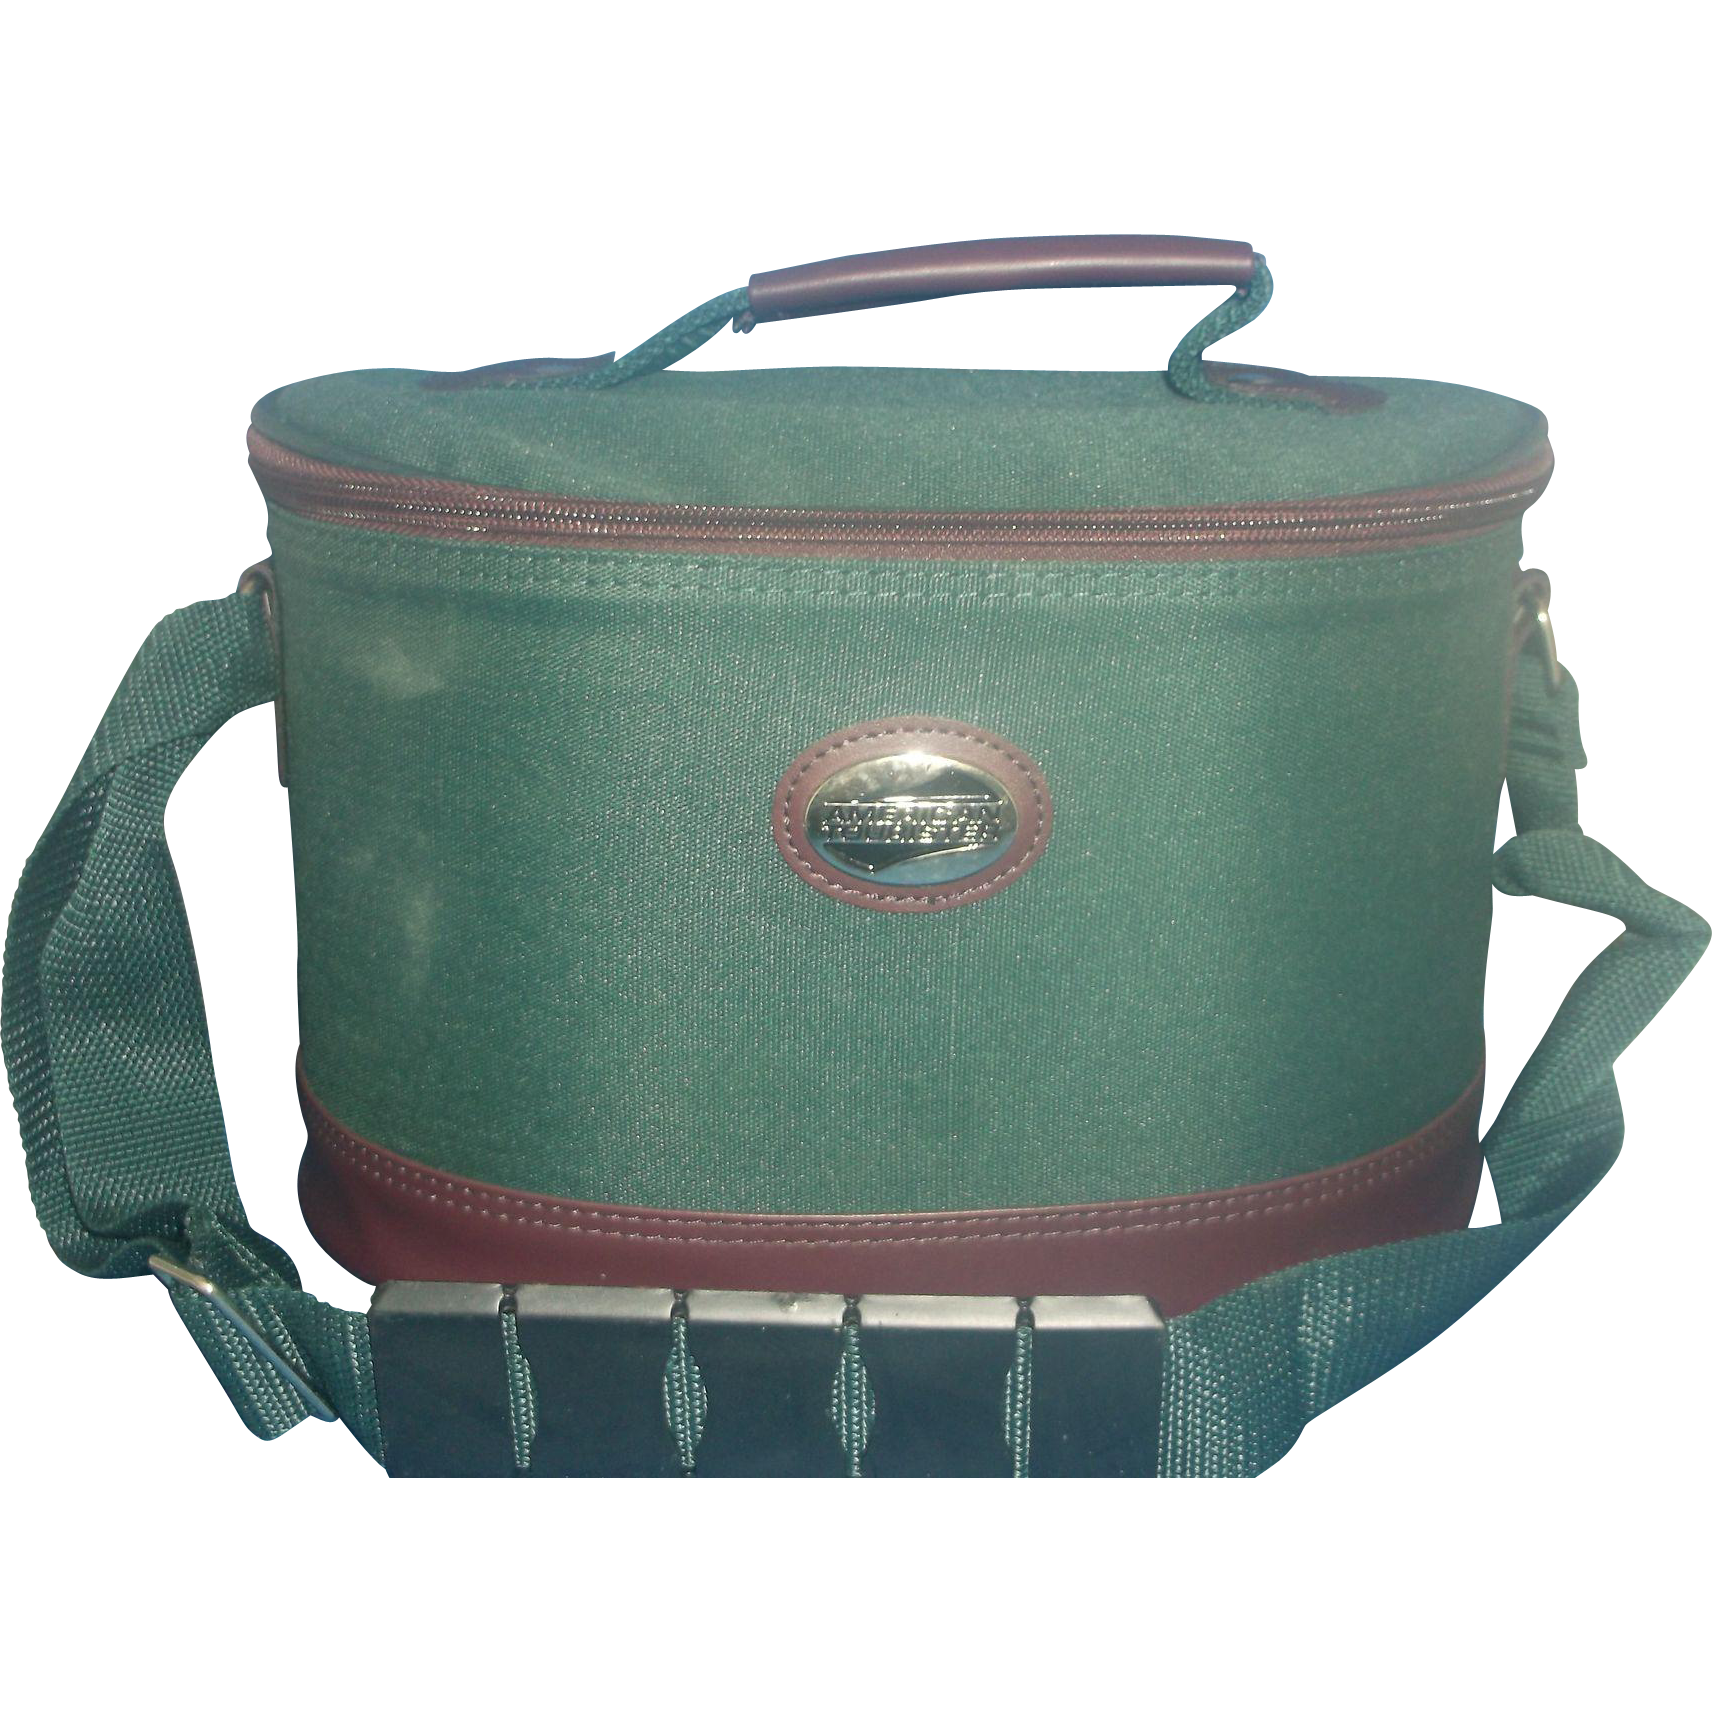 American Tourister Green Oval Train Case